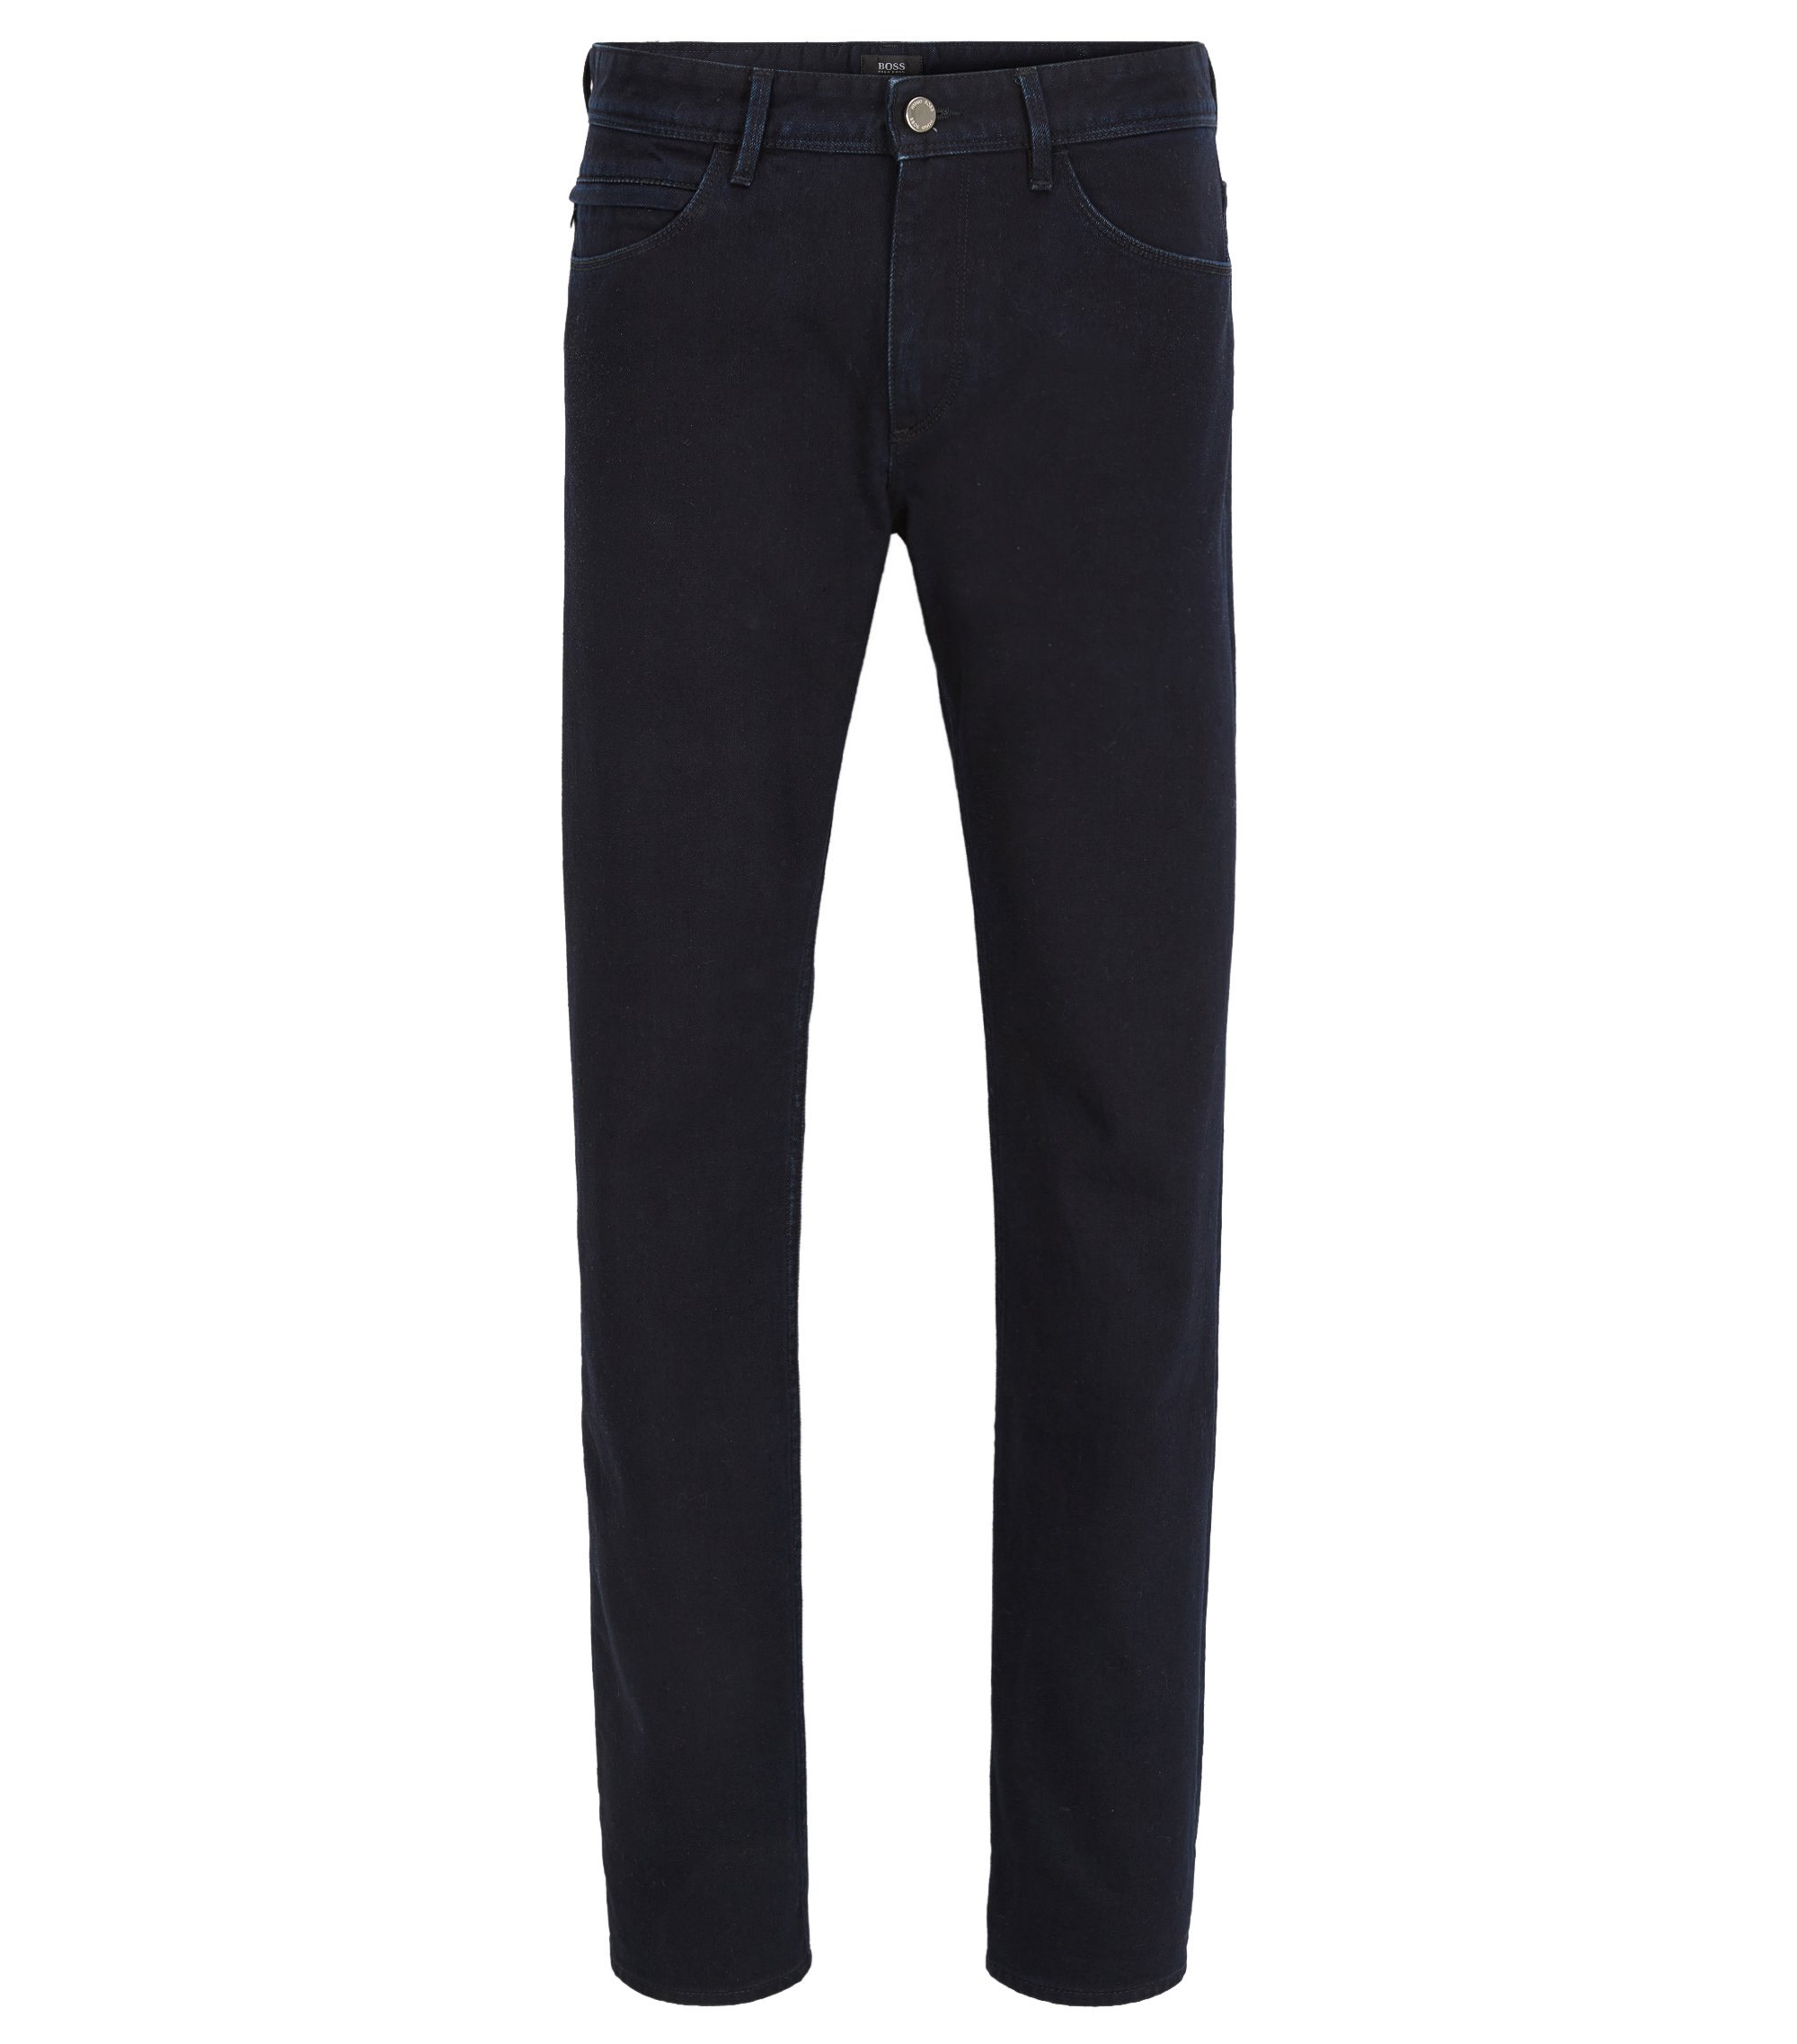 Jeans Slim Fit en denim stretch, de teinte bleu-noir finition Rinsed, Bleu foncé